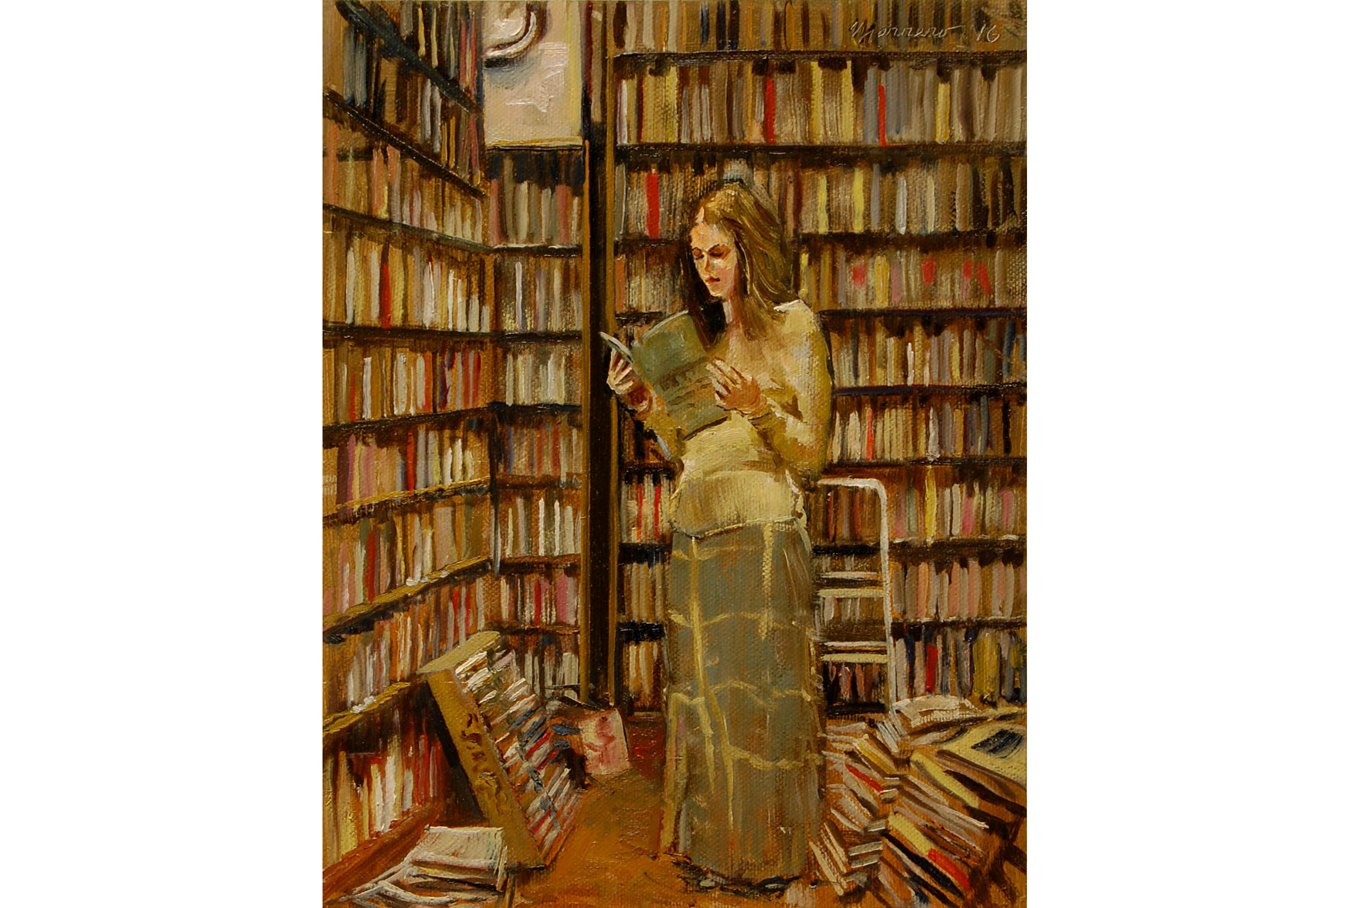 """At Ray & Judy's Bookstore, Study 2"" by Onelio Marrero, 10"" x 8​""​ Oil On Canvas Board"